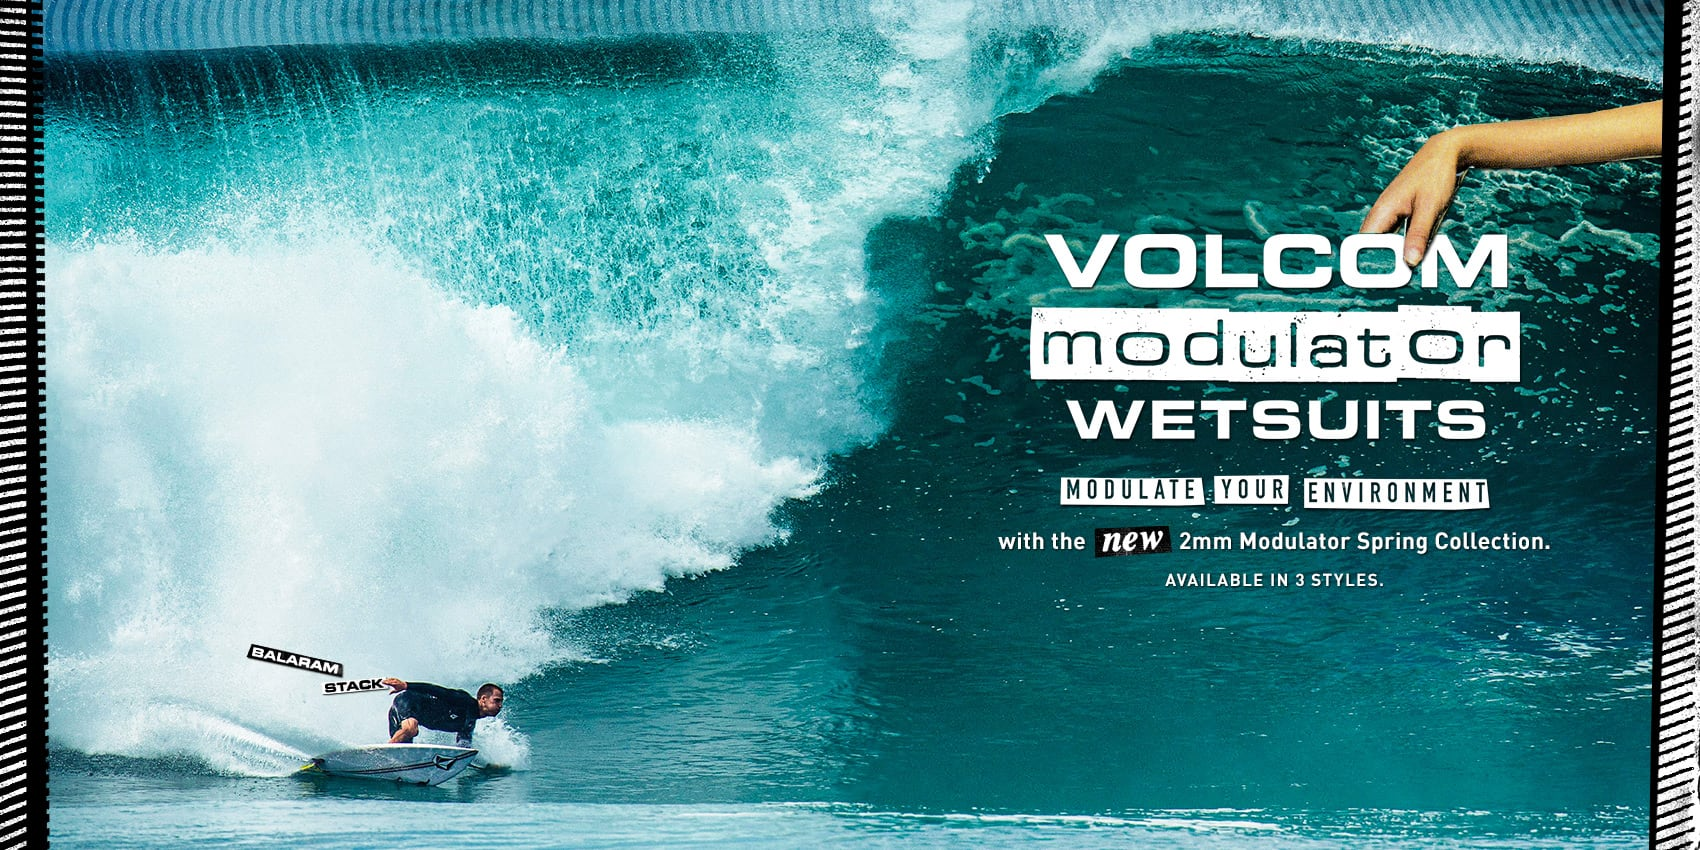 volcom modulator wetsuits modulate your environment with the new 2mm spring collection available in 3 styles